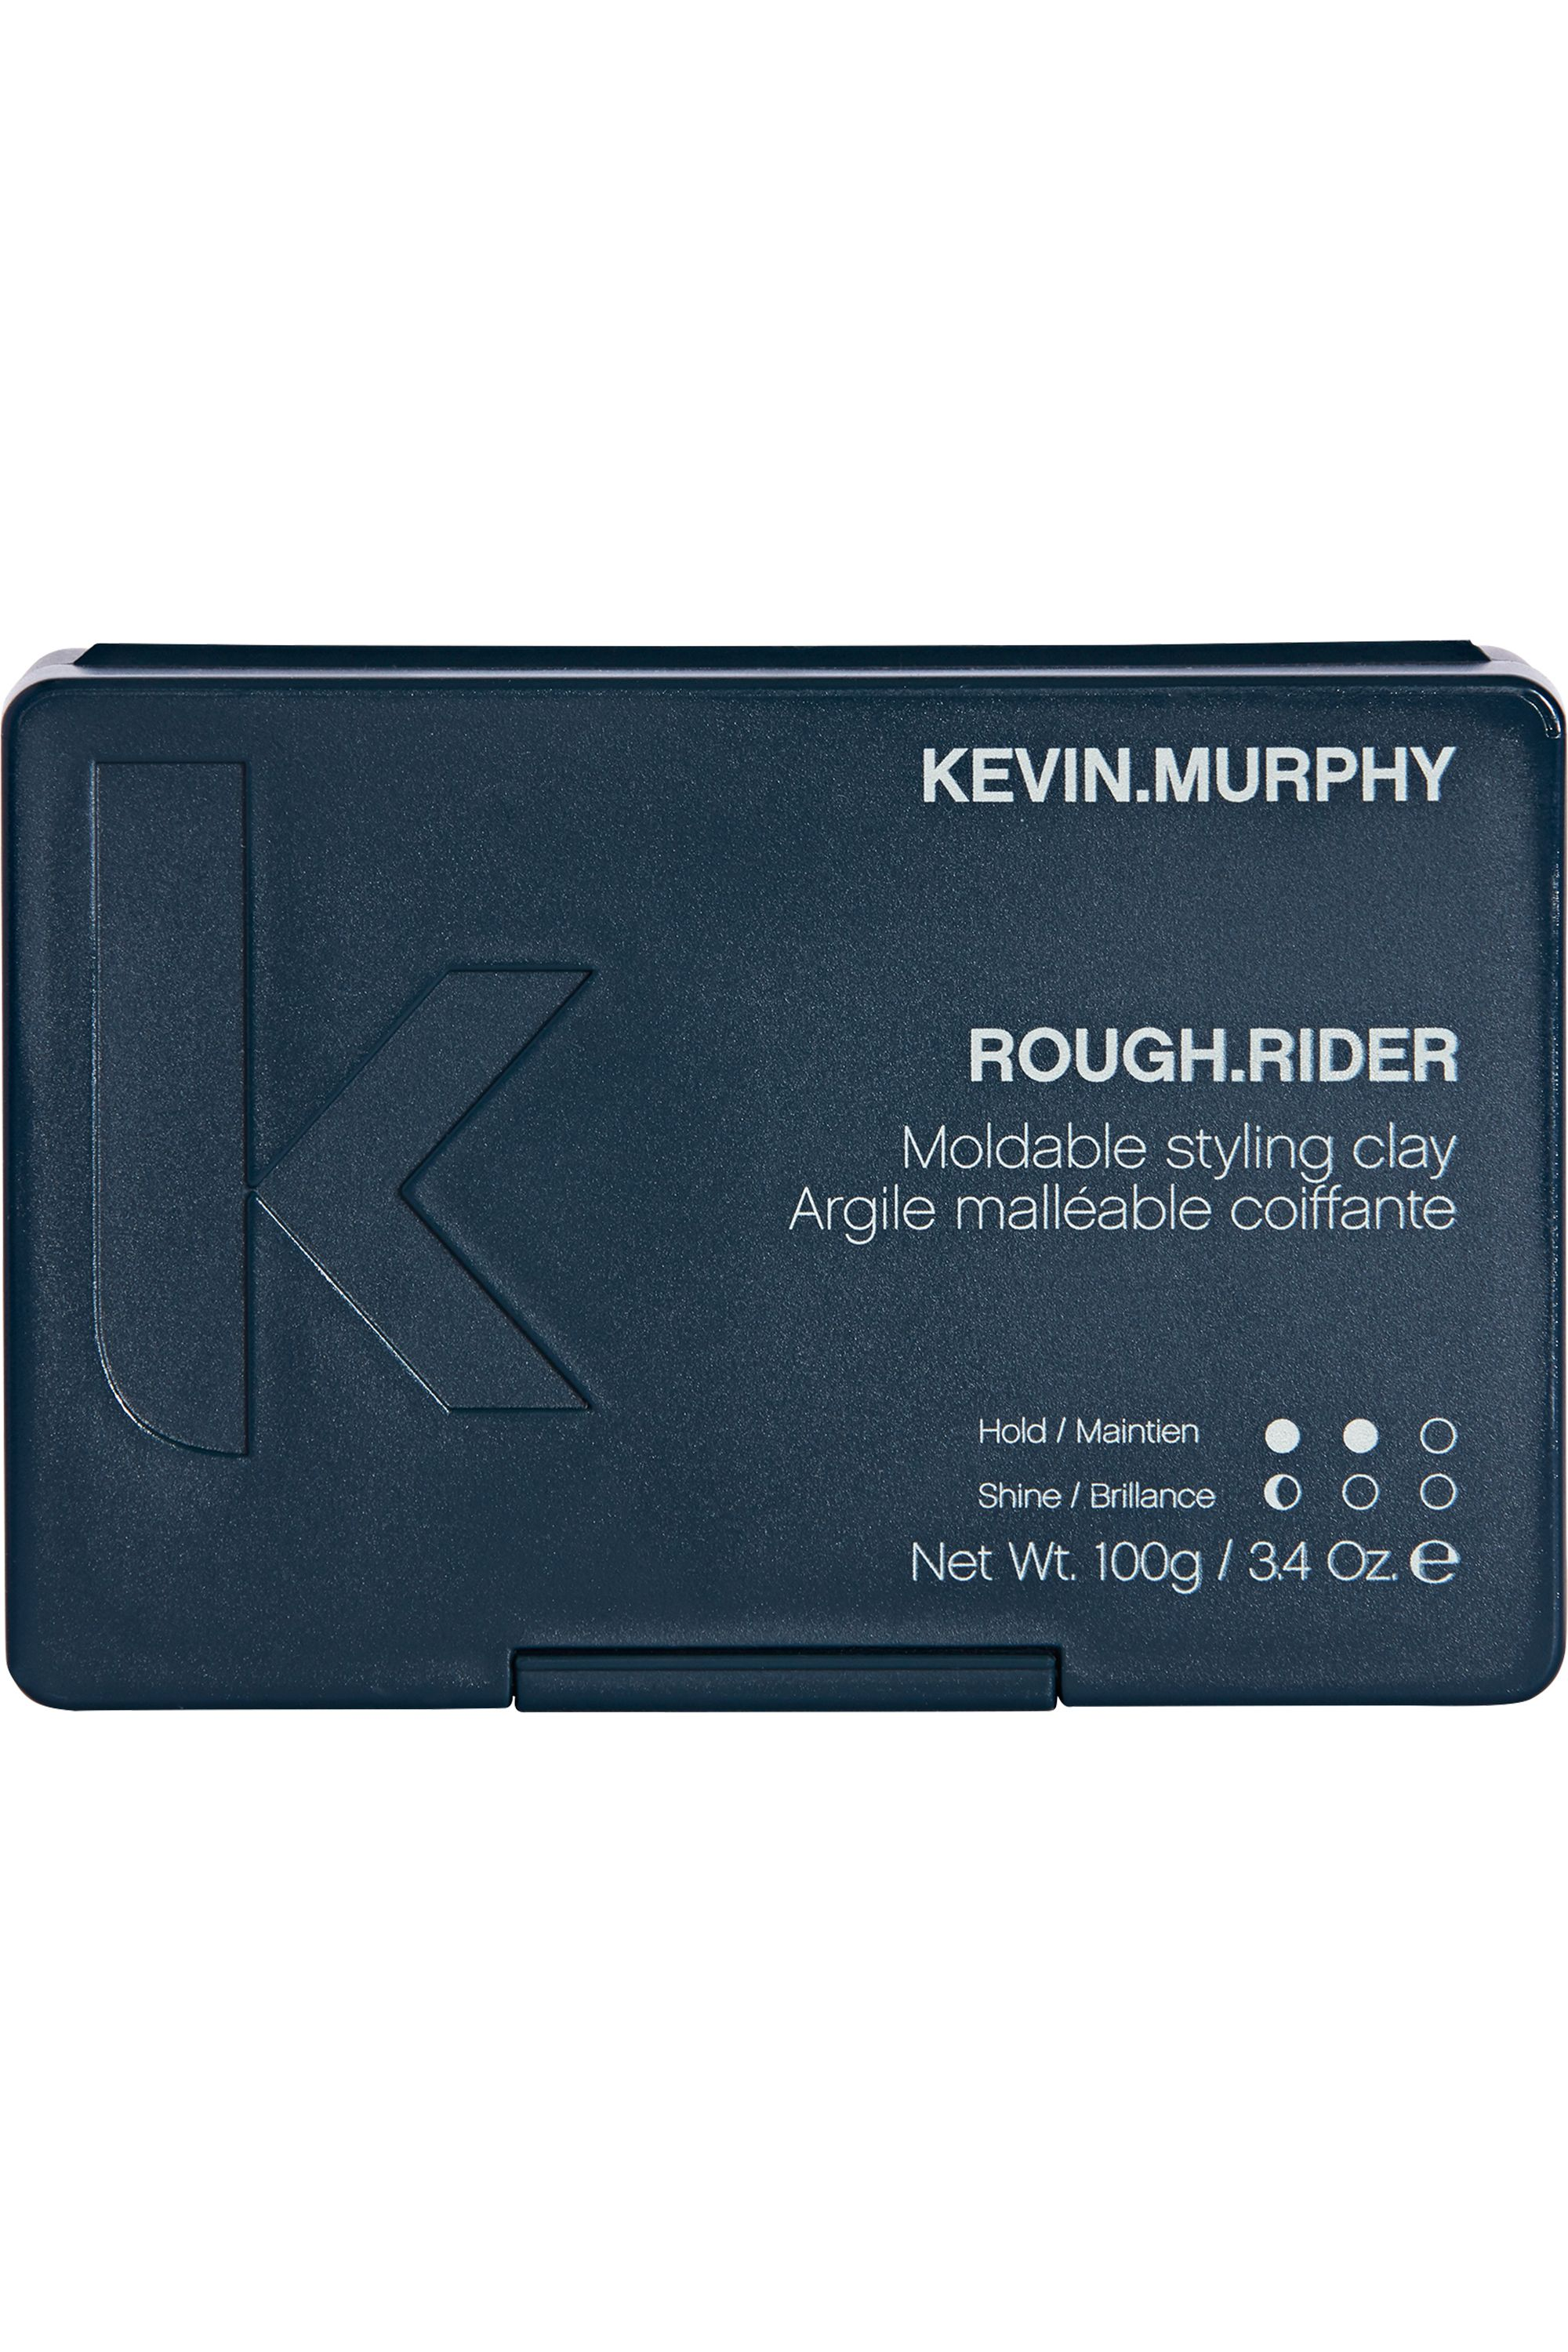 Blissim : KEVIN.MURPHY - Argile malléable coiffante ROUGH.RIDER - Argile malléable coiffante ROUGH.RIDER